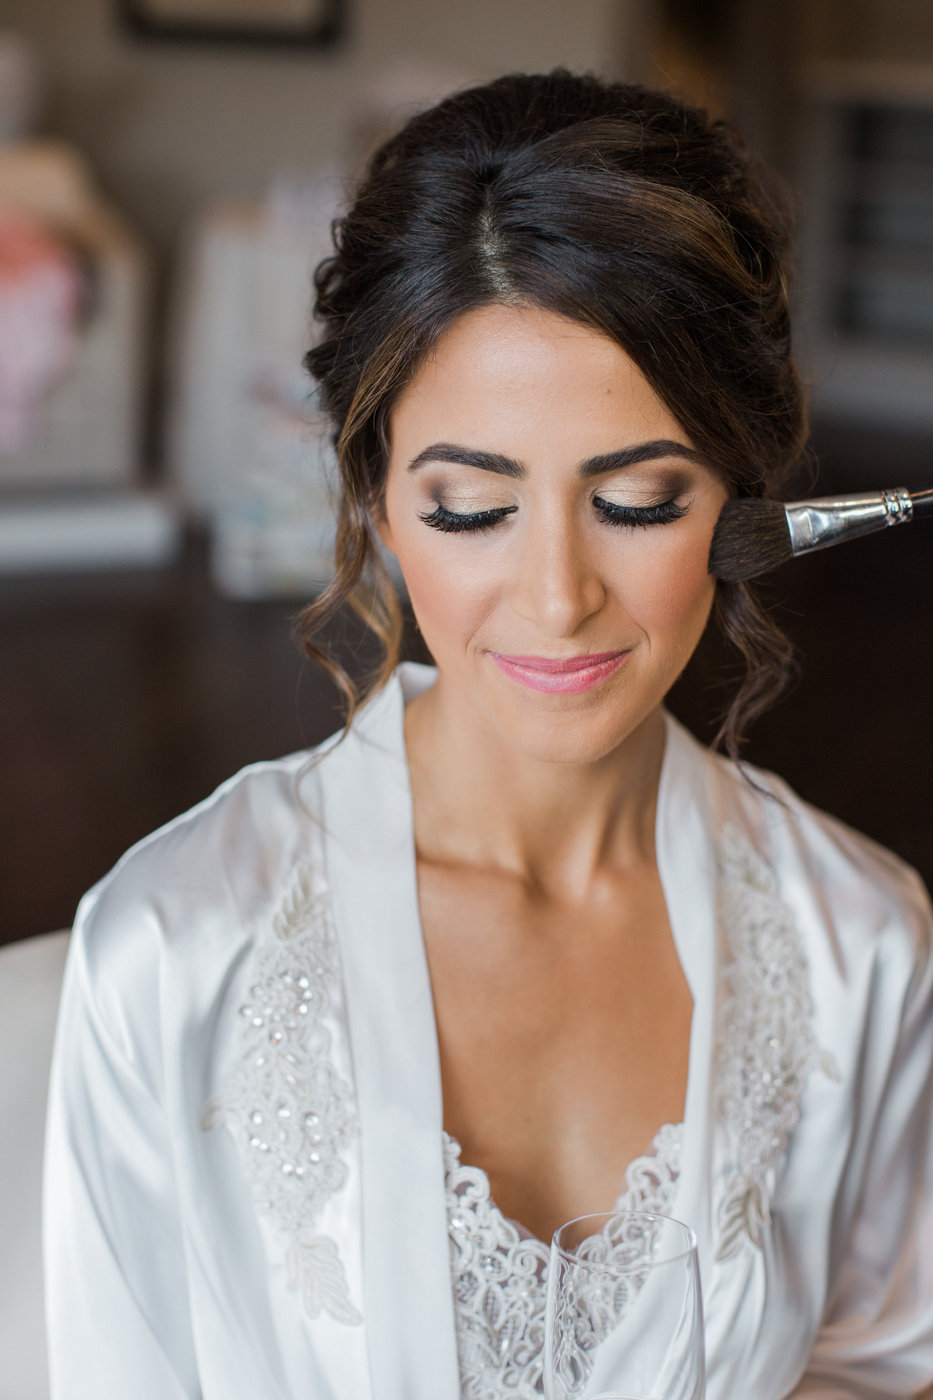 bride hair and makeup done